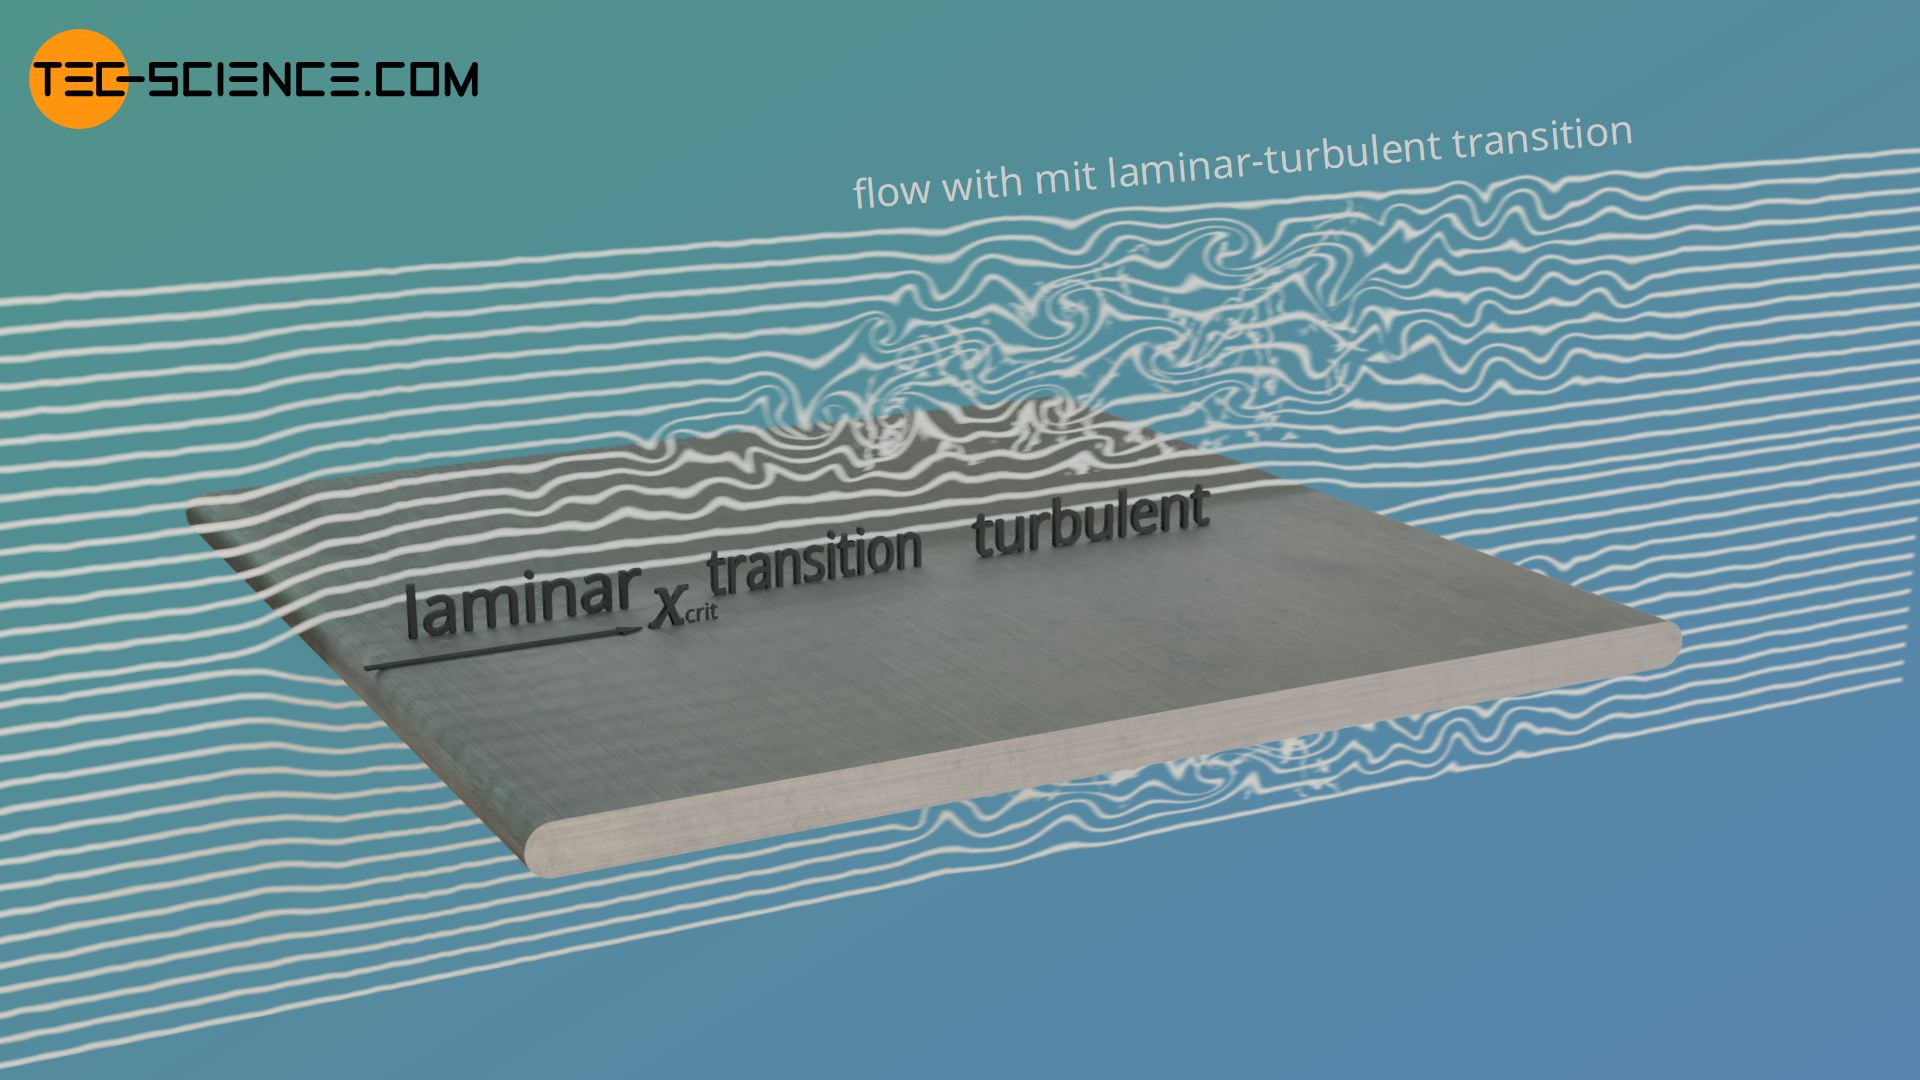 Convective heat transfer at a flat plate with laminar-turbulent flow